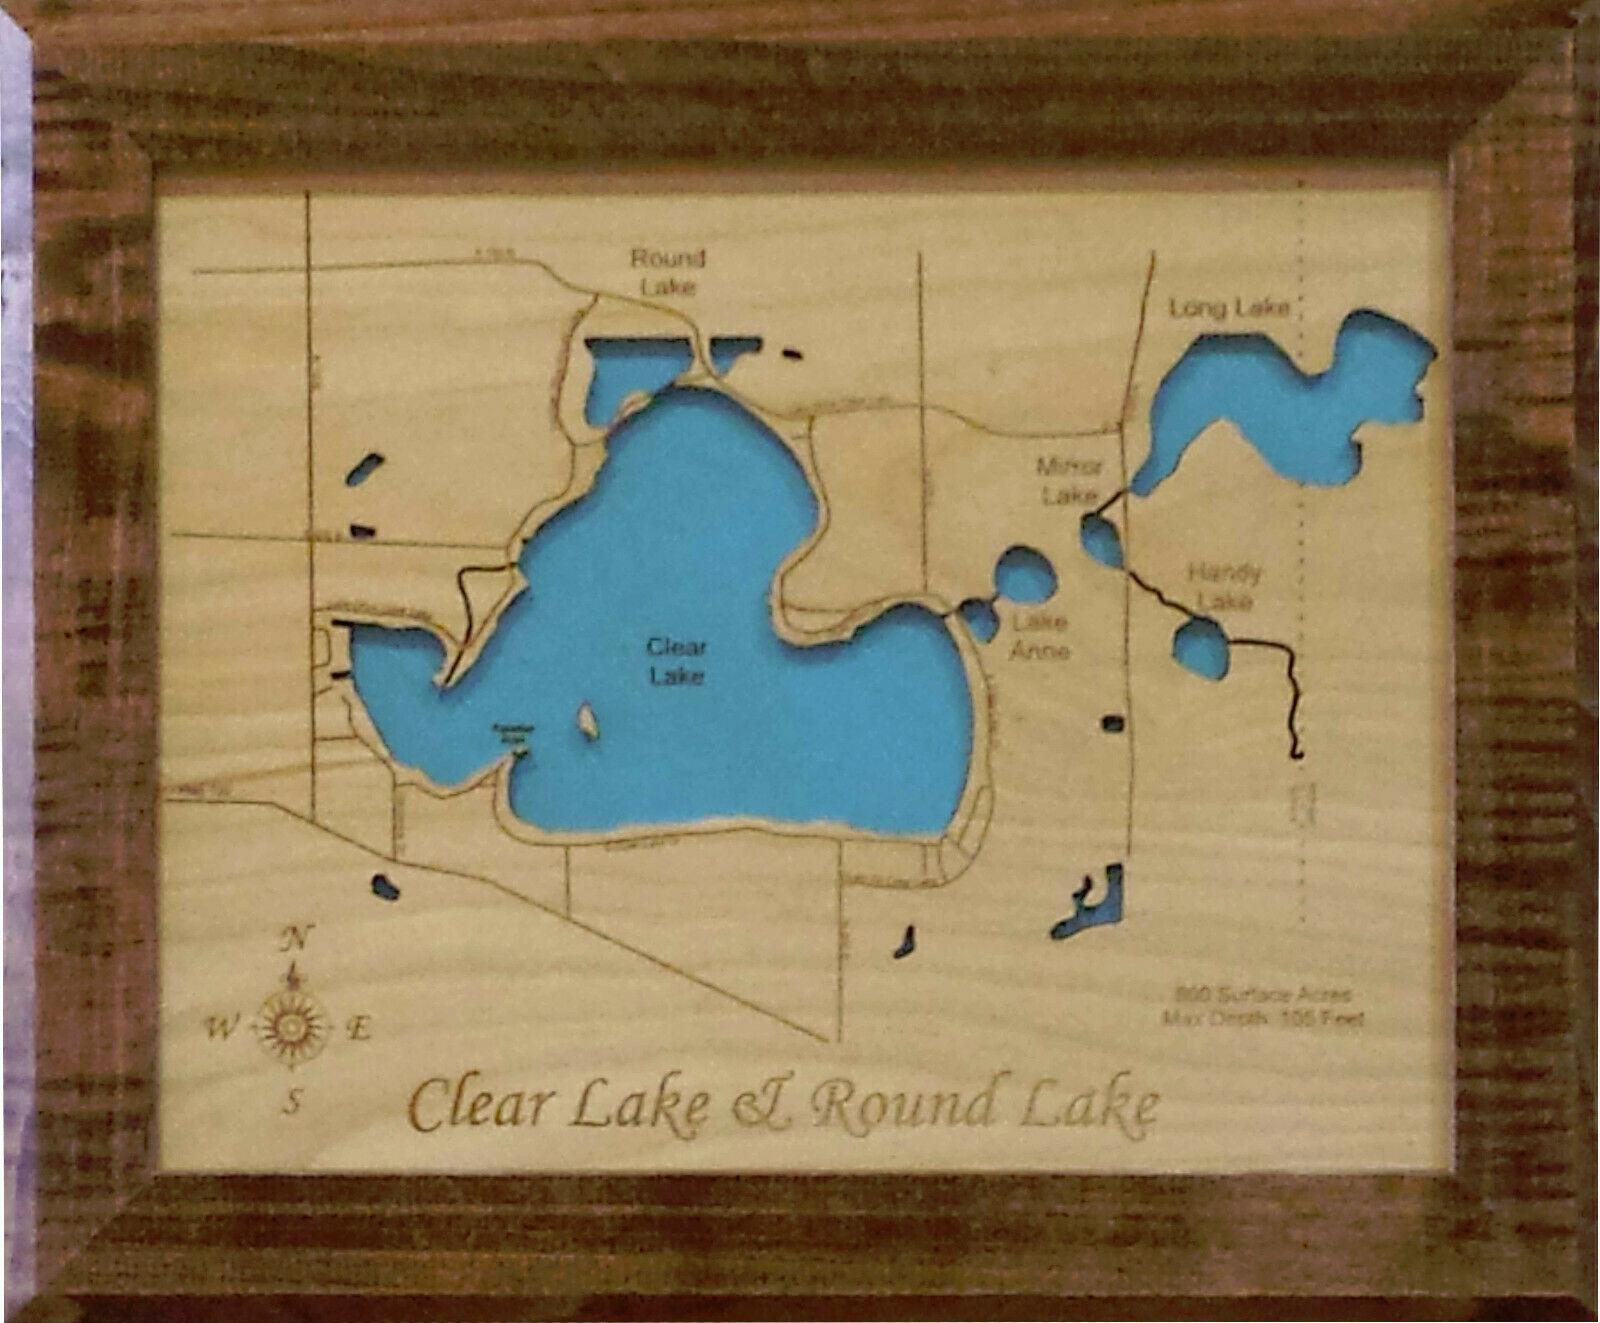 Wood Laser Cut Map of Round Lake and Clear Lake, Indiana